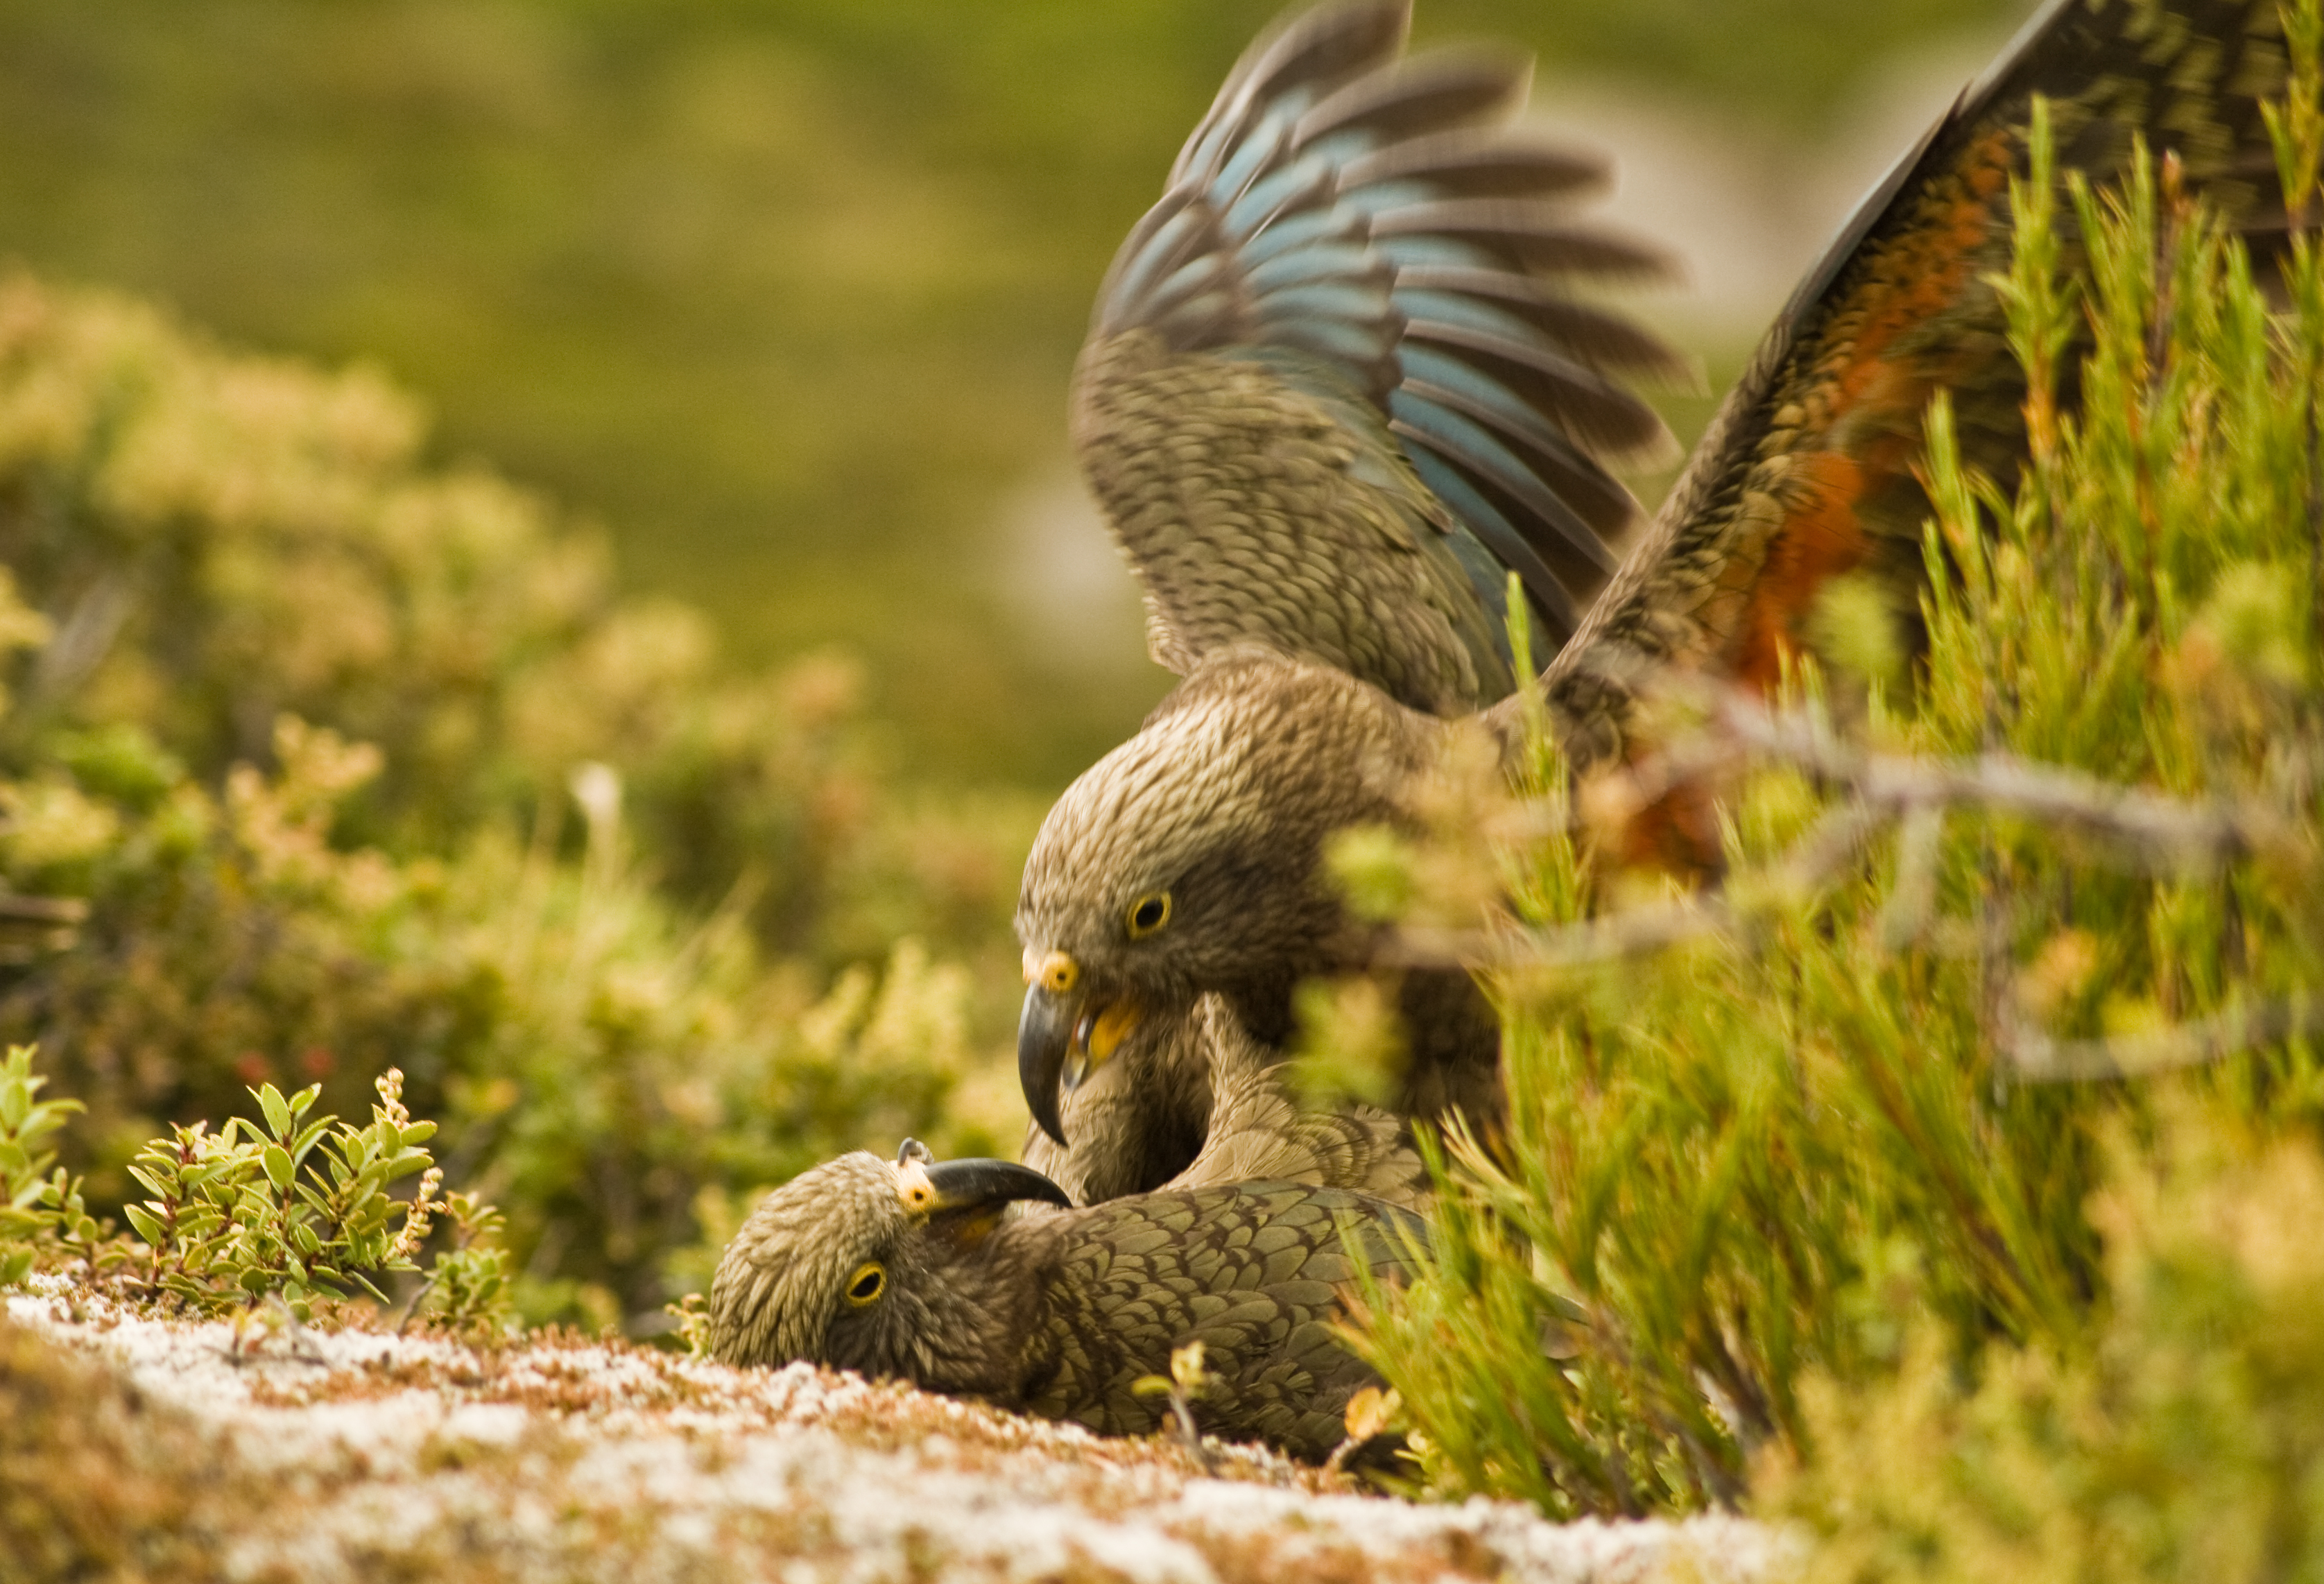 Image: What a hoot! Cheeky kea 'laughter' sets off playful antics